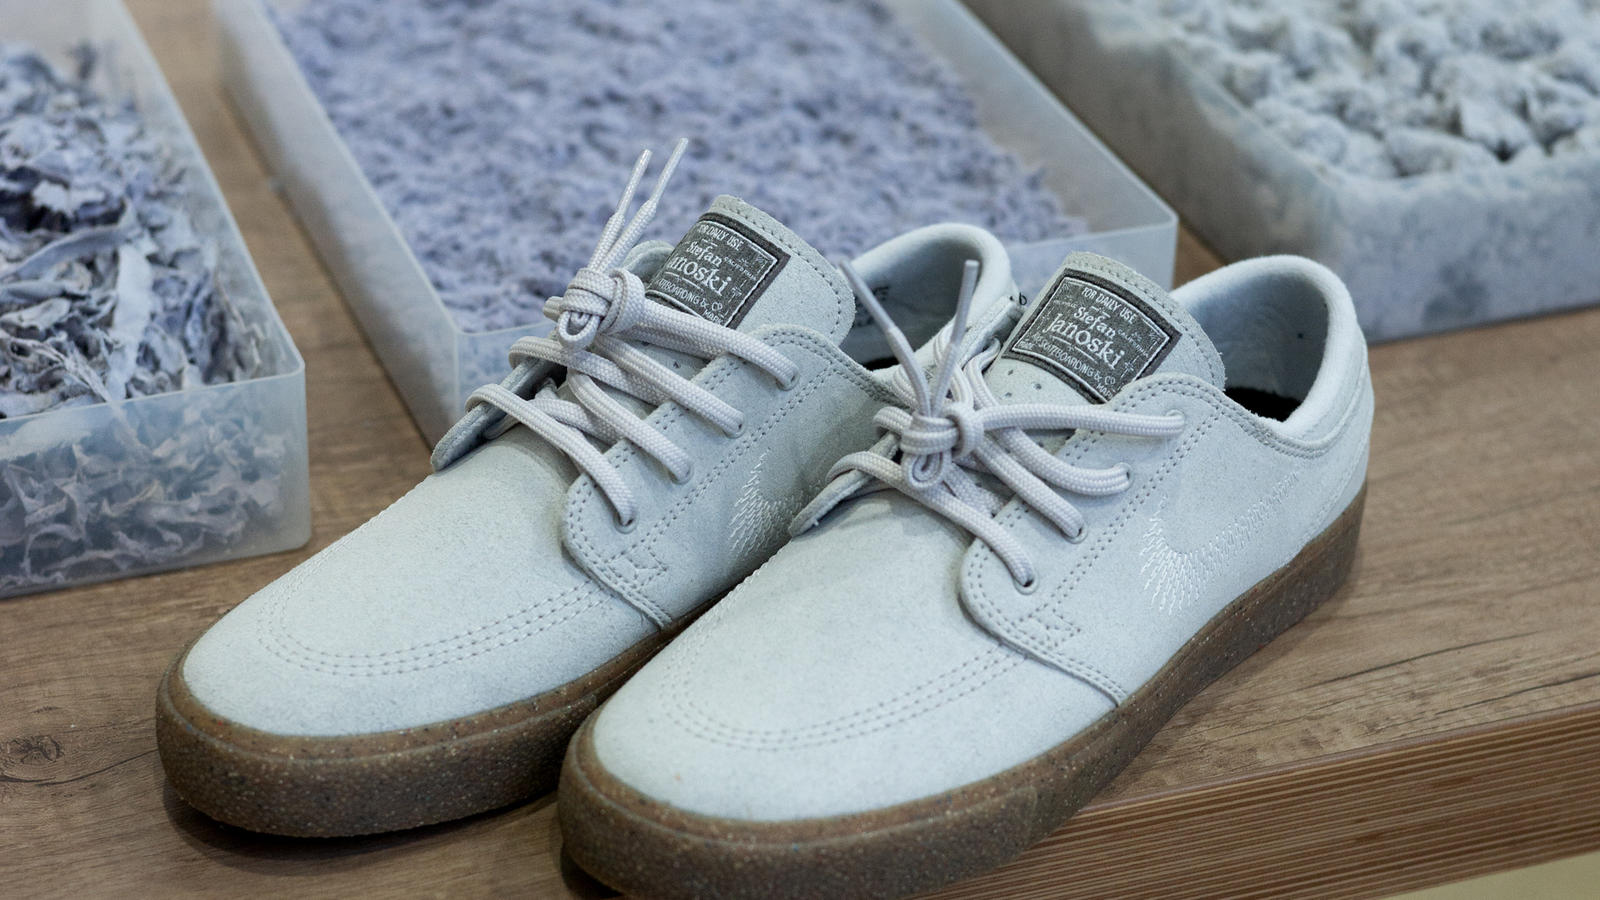 Nike SB Zoom Janoski Flyleather RM Official Images and Release ...